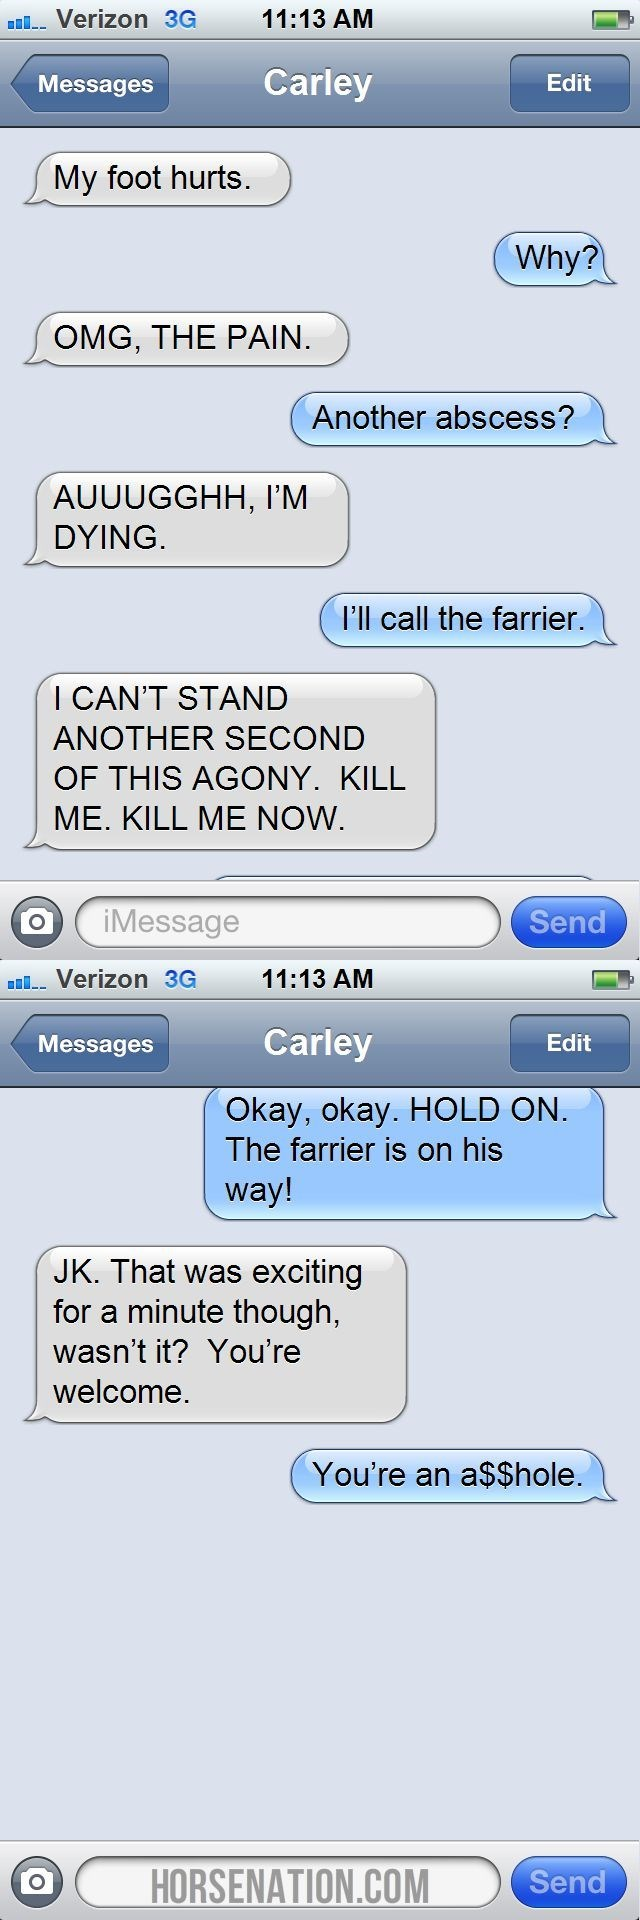 horse chat - Text - 11:13 AM Verizon 3G Carley Edit Messages My foot hurts. Why? OMG, THE PAIN. Another abscess? AUUUGGHH, I'M DYING. I'll call the farrier. I CAN'T STAND ANOTHER SECOND OF THIS AGONY. KILL ME. KILL ME NOW Send iMessage Verizon 3G 11:13 AM Carley Messages Edit Okay, okay. HOLD ON. The farrier is on his way! JK. That was exciting for a minute though, wasn't it? You're welcome. You're an a$$hole. Send HORSENATION.COM